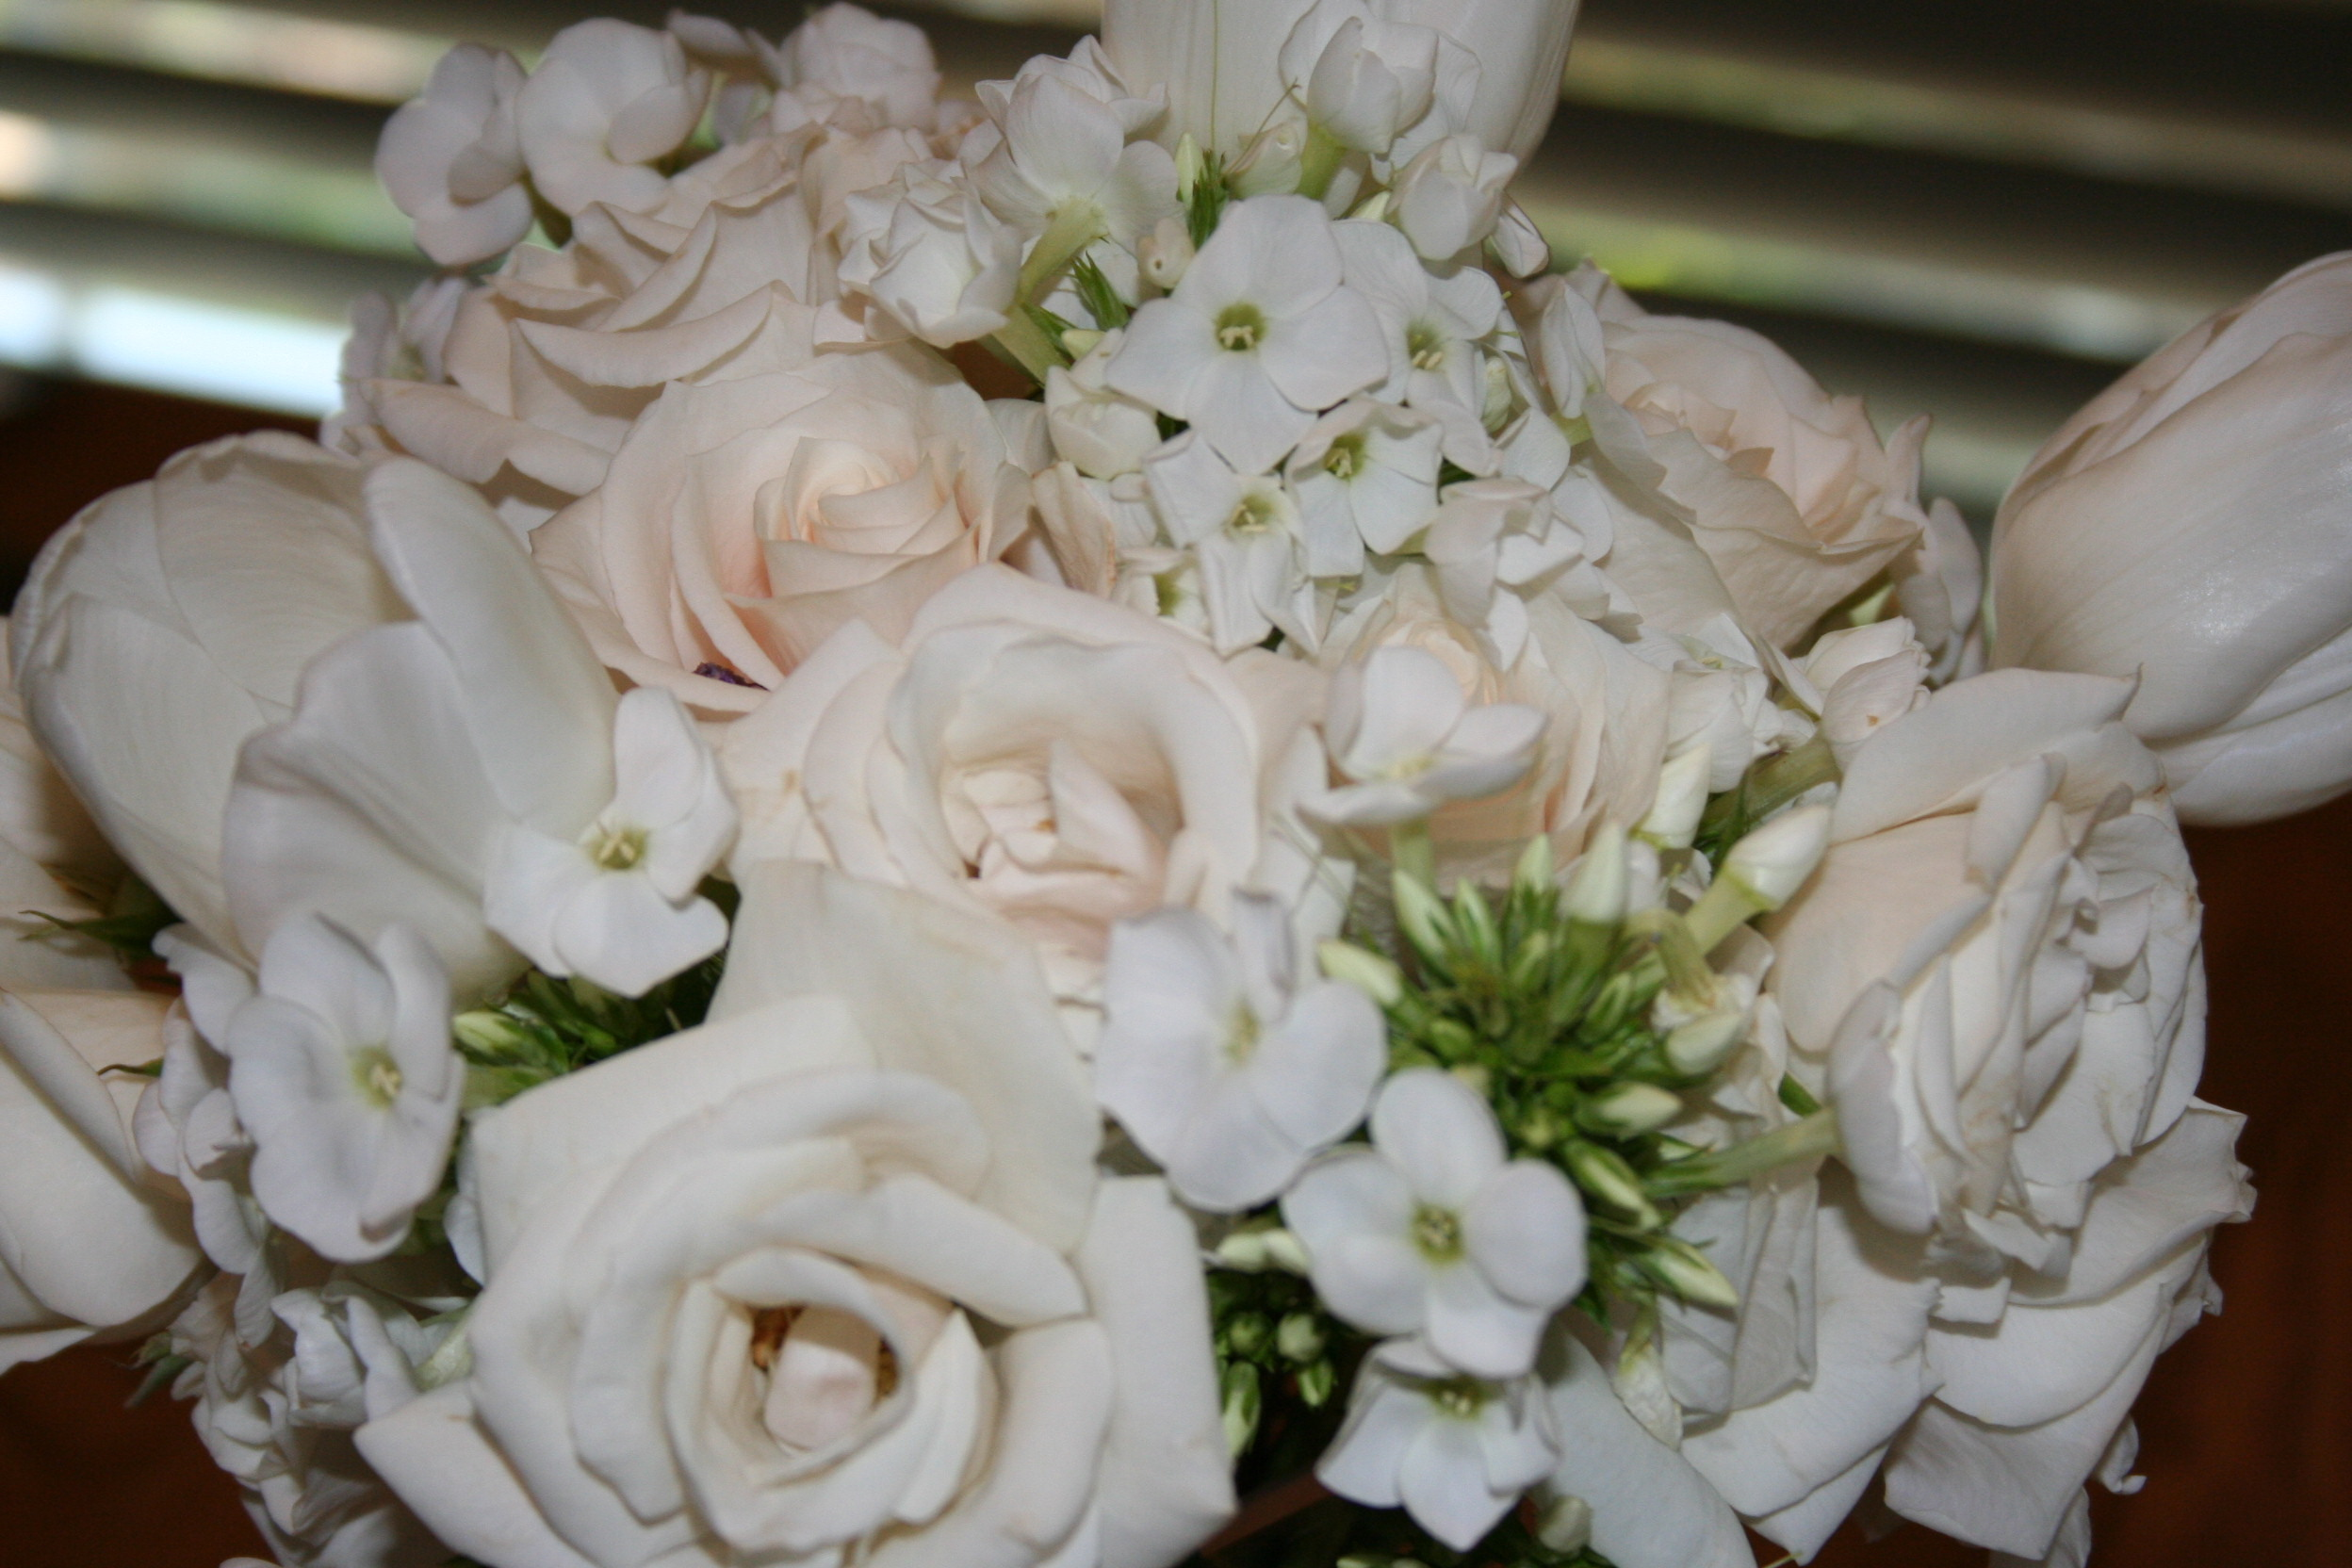 Flowers & Decor, white, green, Bride Bouquets, Flowers, Bouquet, Unique, Floral, Designer, Design, Florist, Maria, Masterson